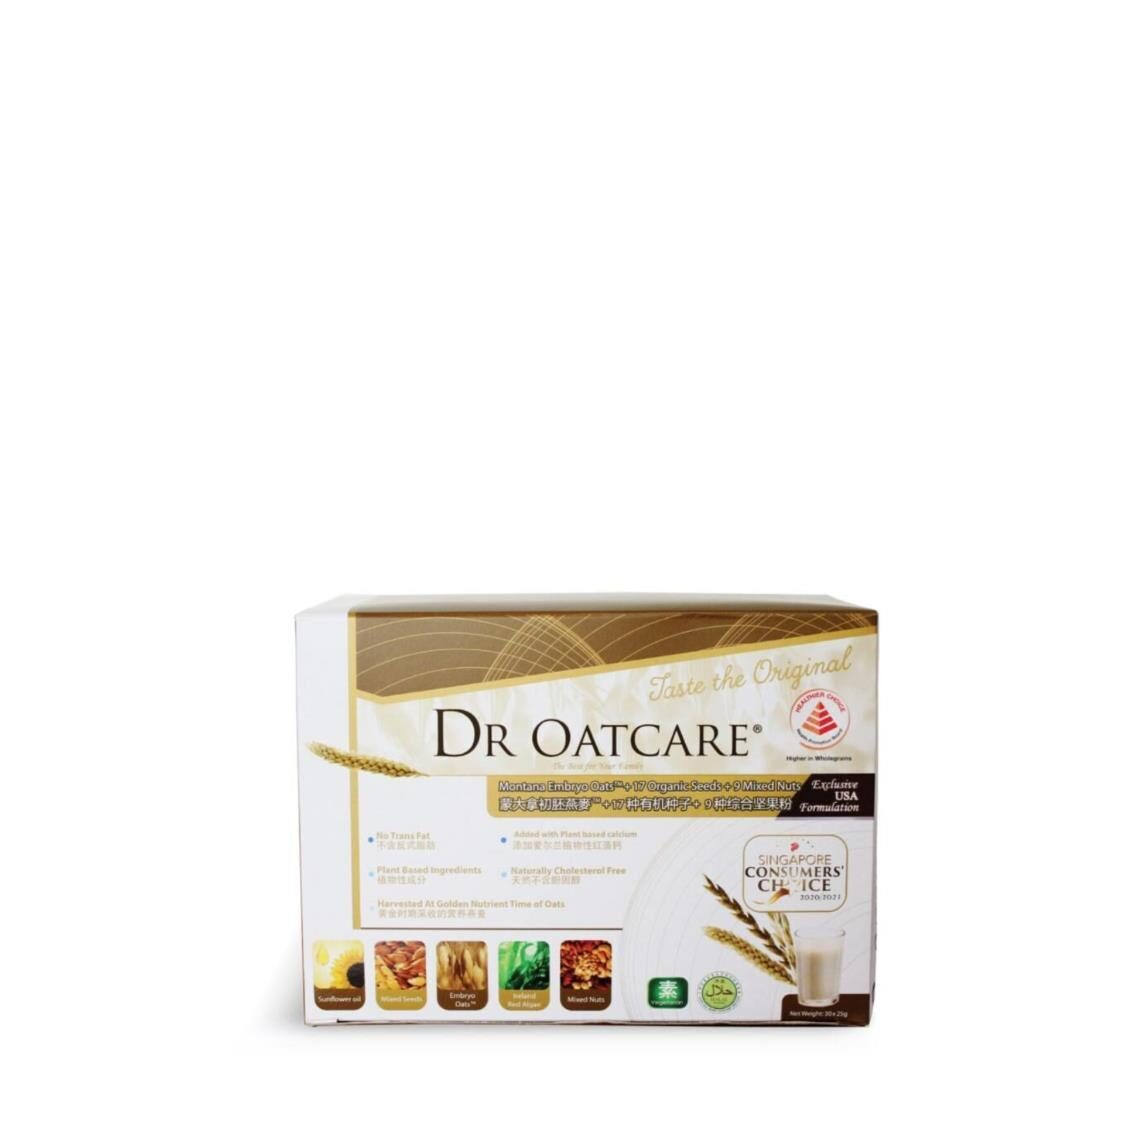 Dr Oatcare Box 25g X 30 Tablets